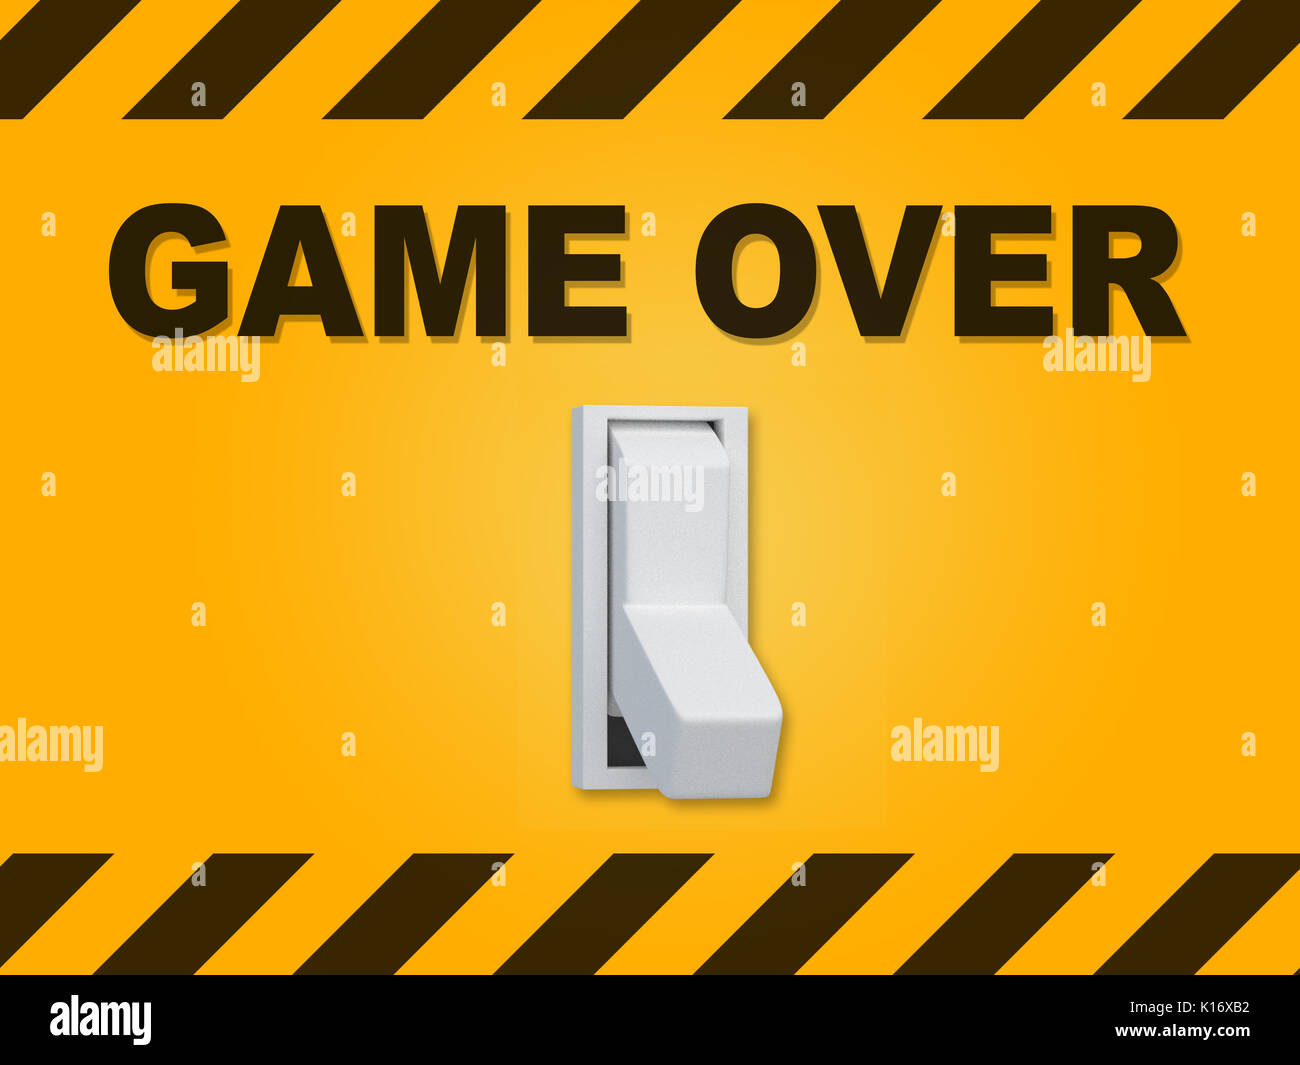 3D illustration of 'GAME OVER' title above an electric switch on yellow wall - Stock Image